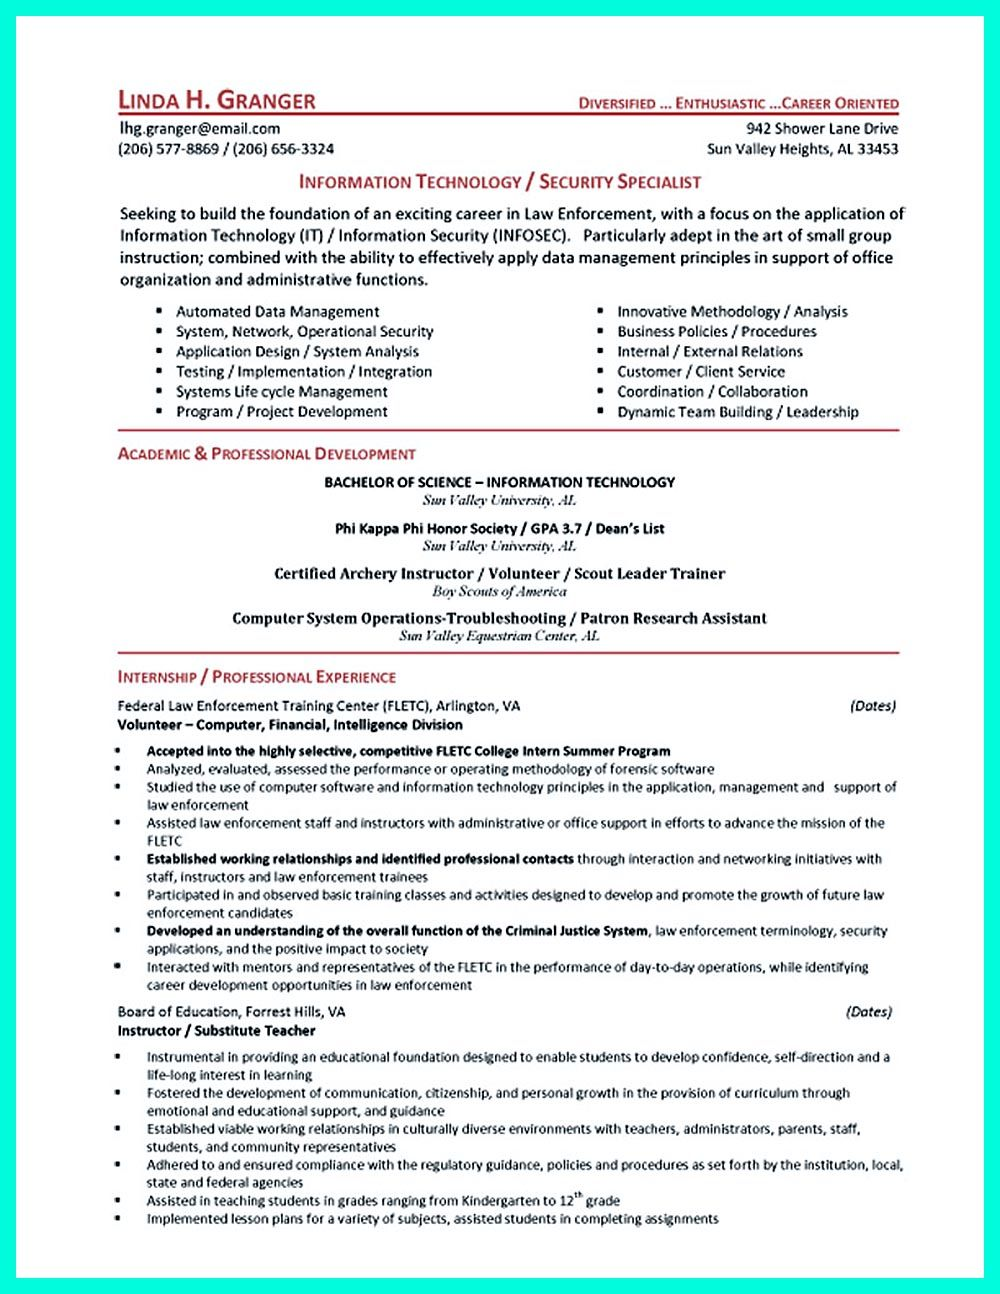 powerful cyber security resume to get hired right away student job examples sample Resume Cyber Security Resume Sample